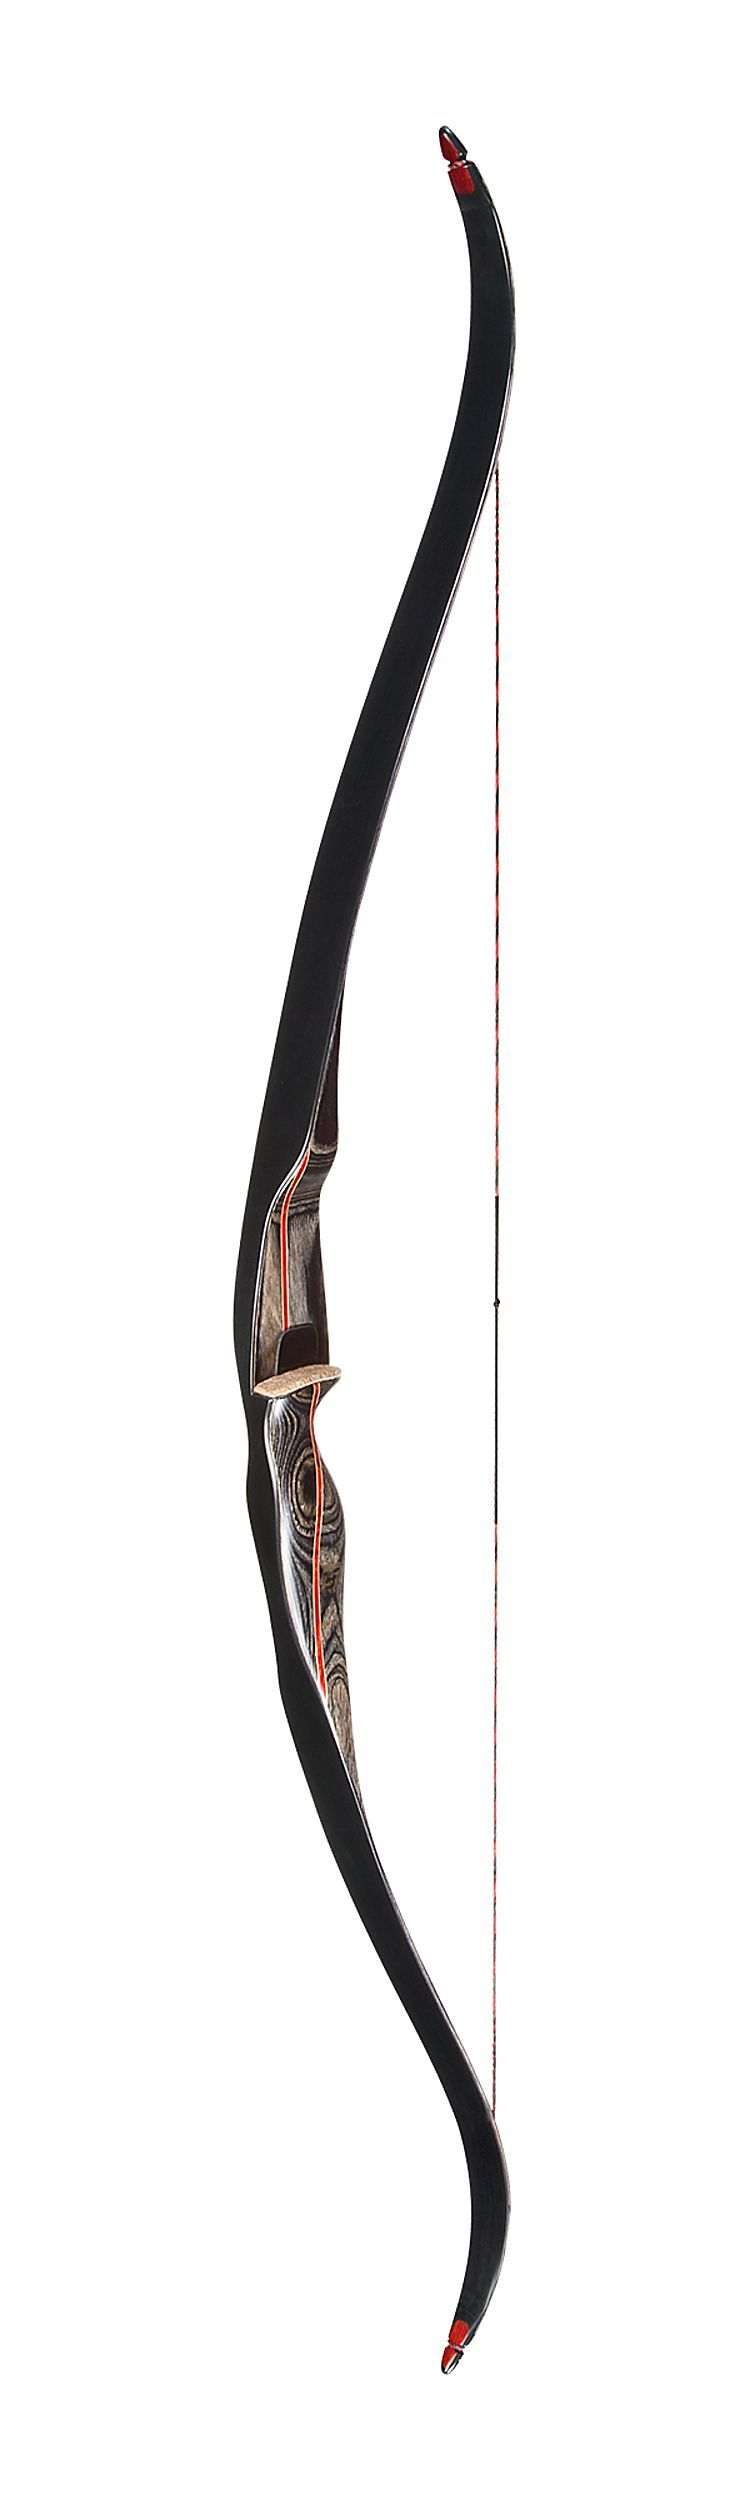 Bear Archery Super Grizzly Recurve Bows | traditional archery